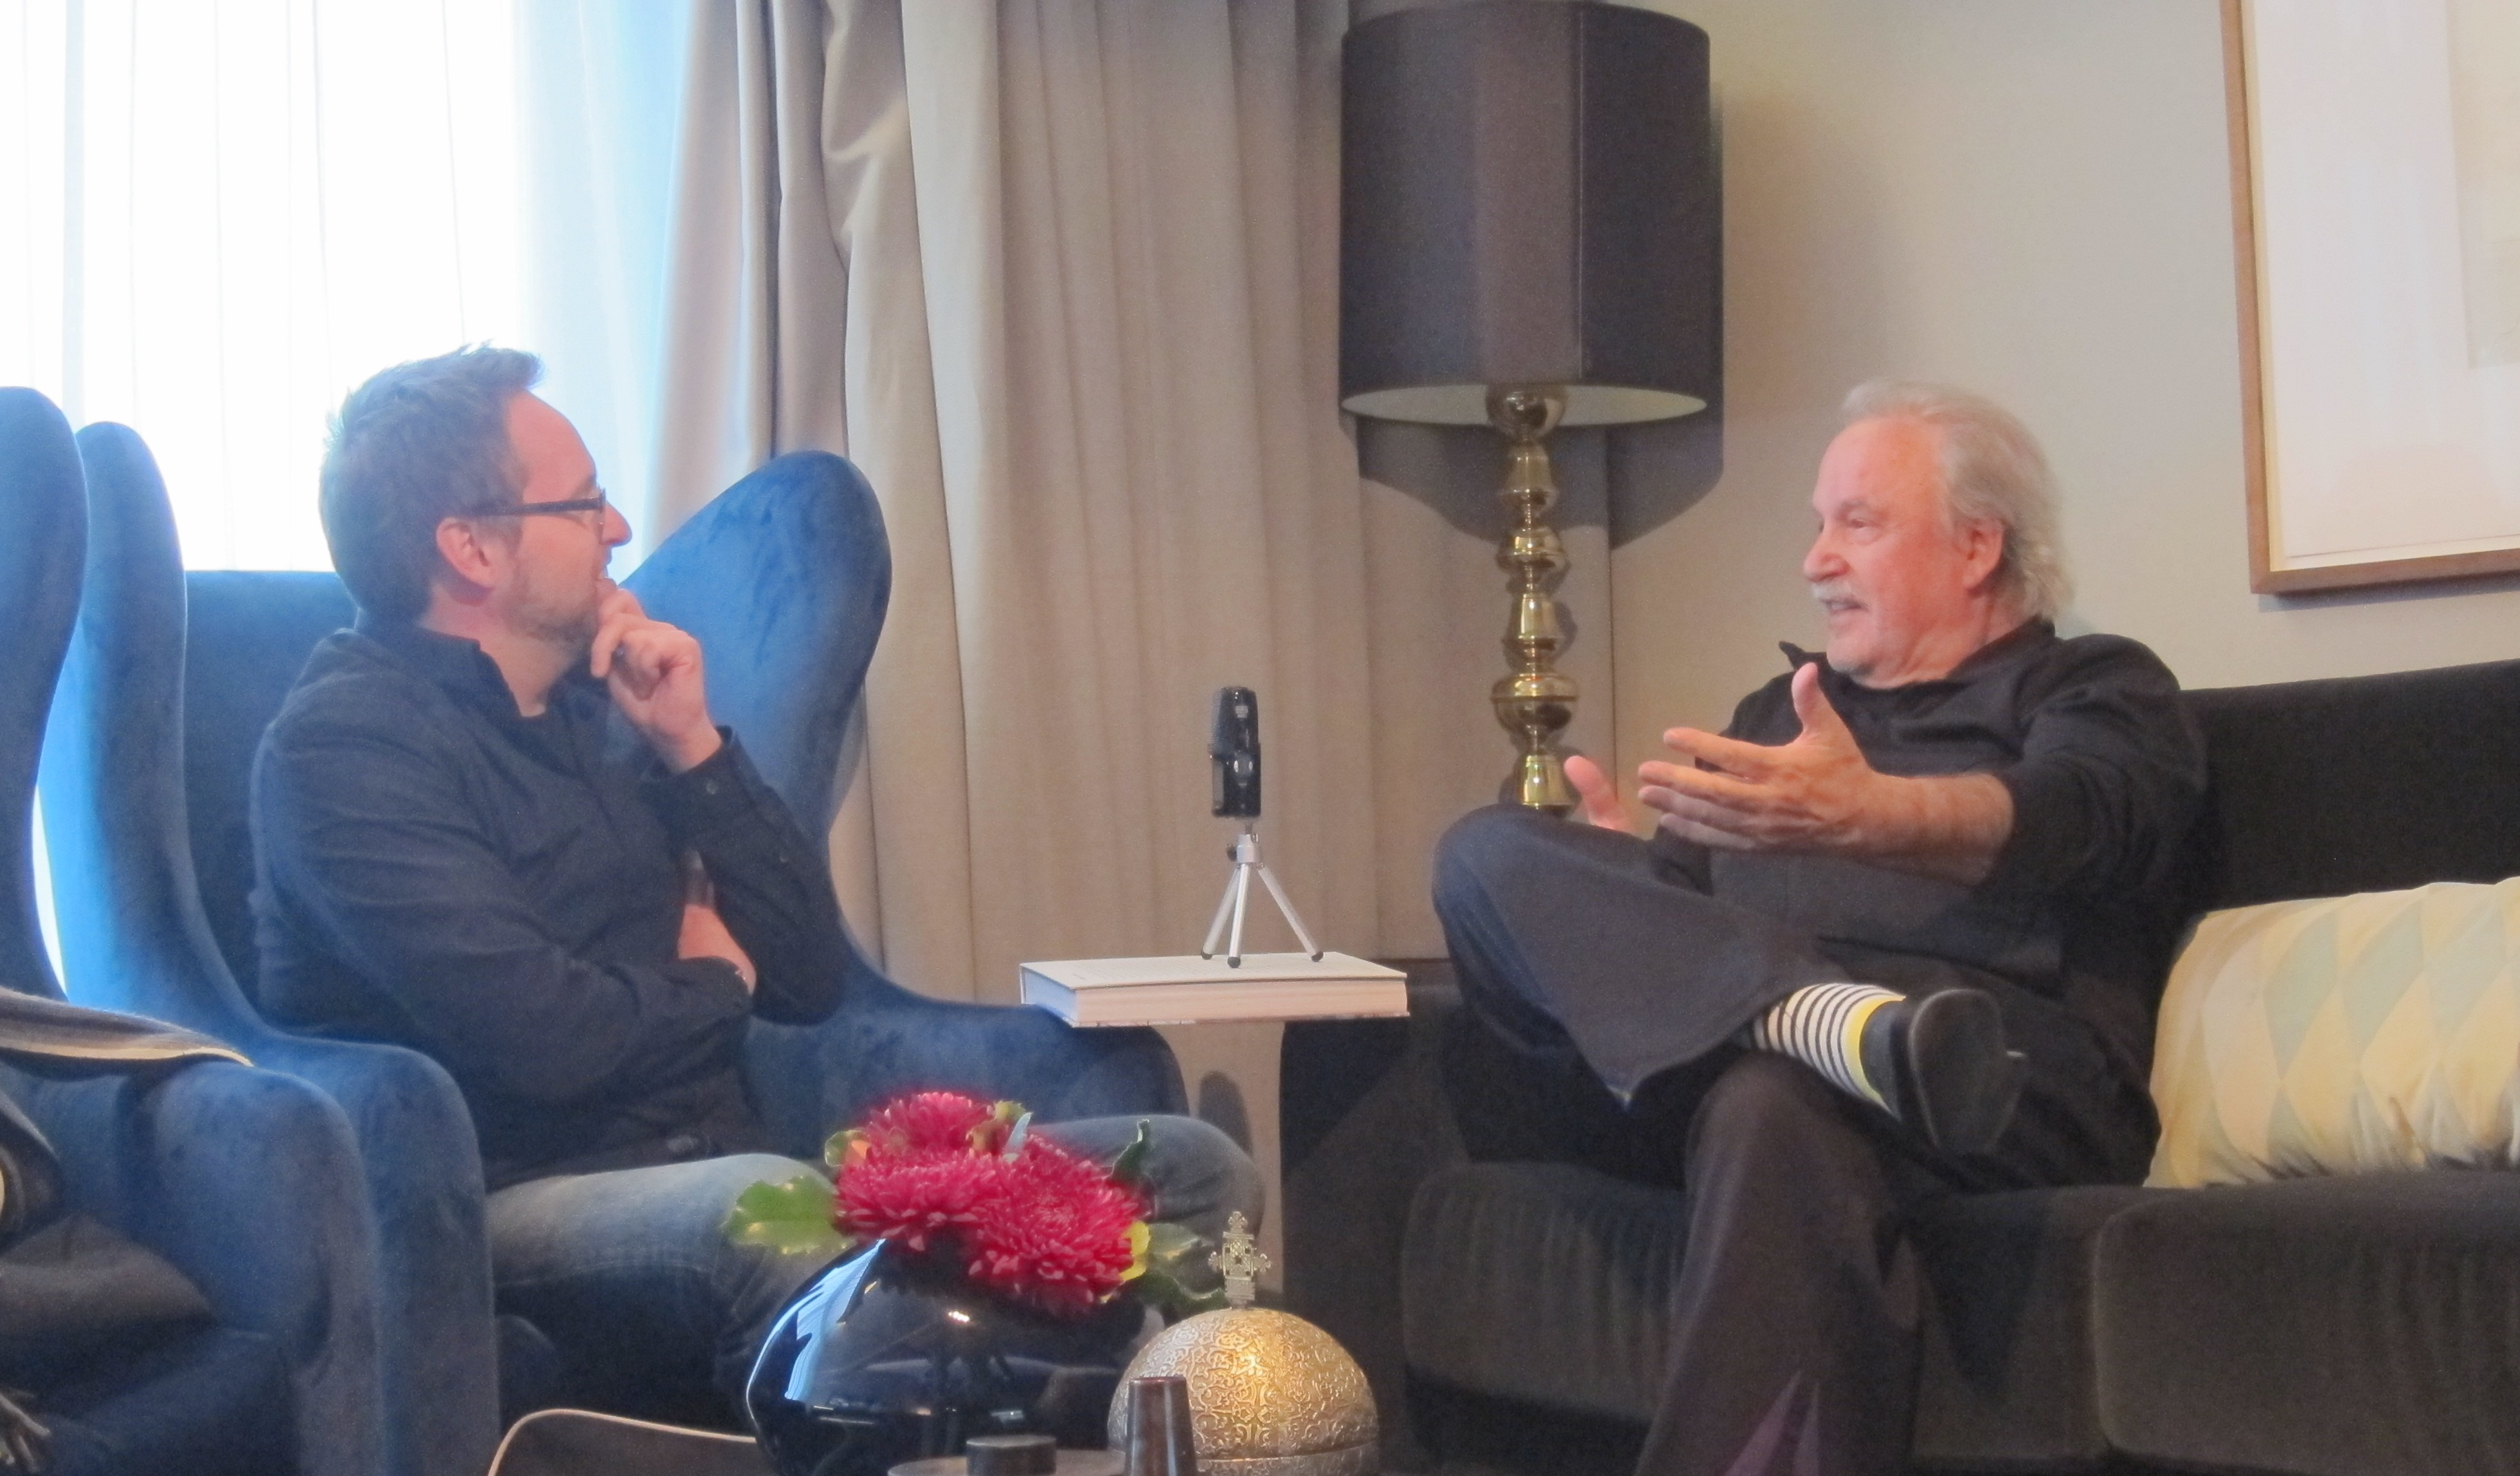 Giorgio Moroder in conversation with Thor Joachim Haga.